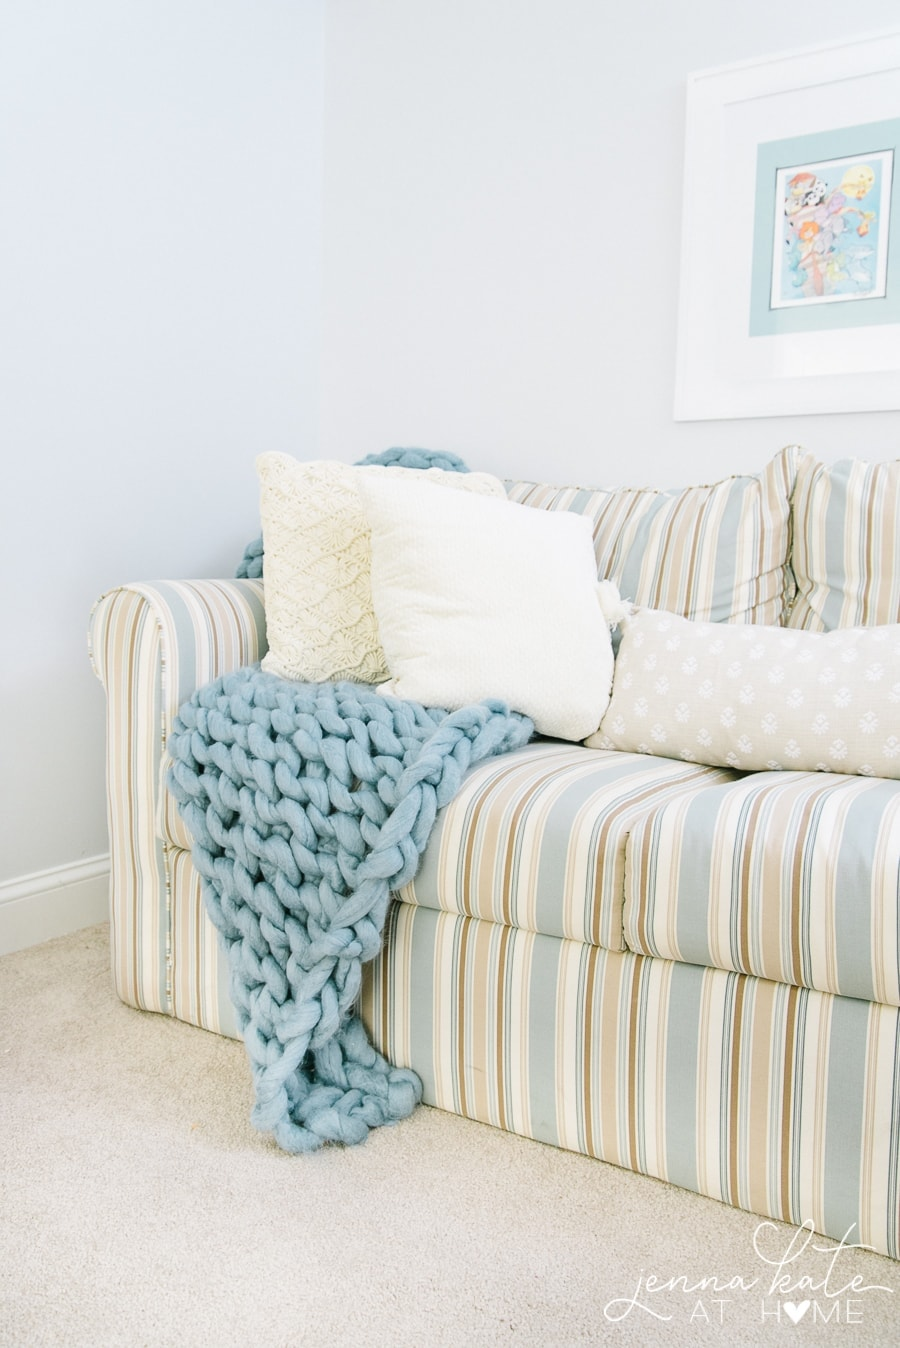 A beige and blue striped sofa, with beige throw pillows and a thick blue blanket